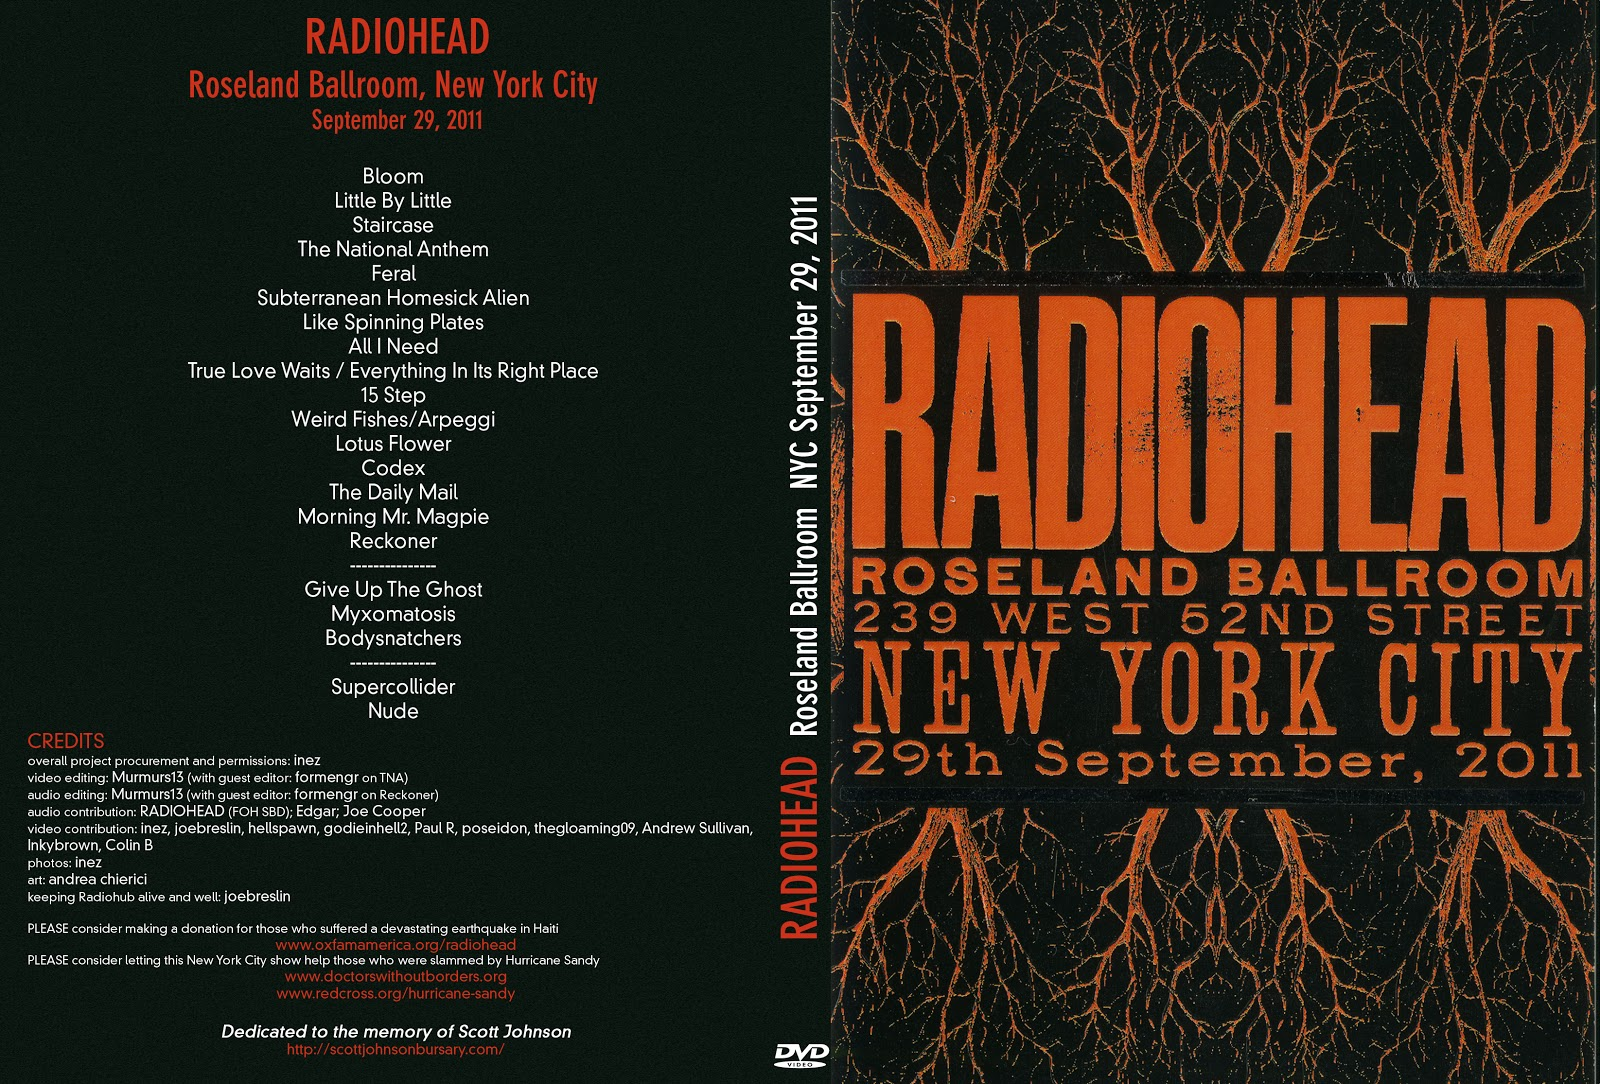 Radiohead - Live at Roseland Ballroom, New York City